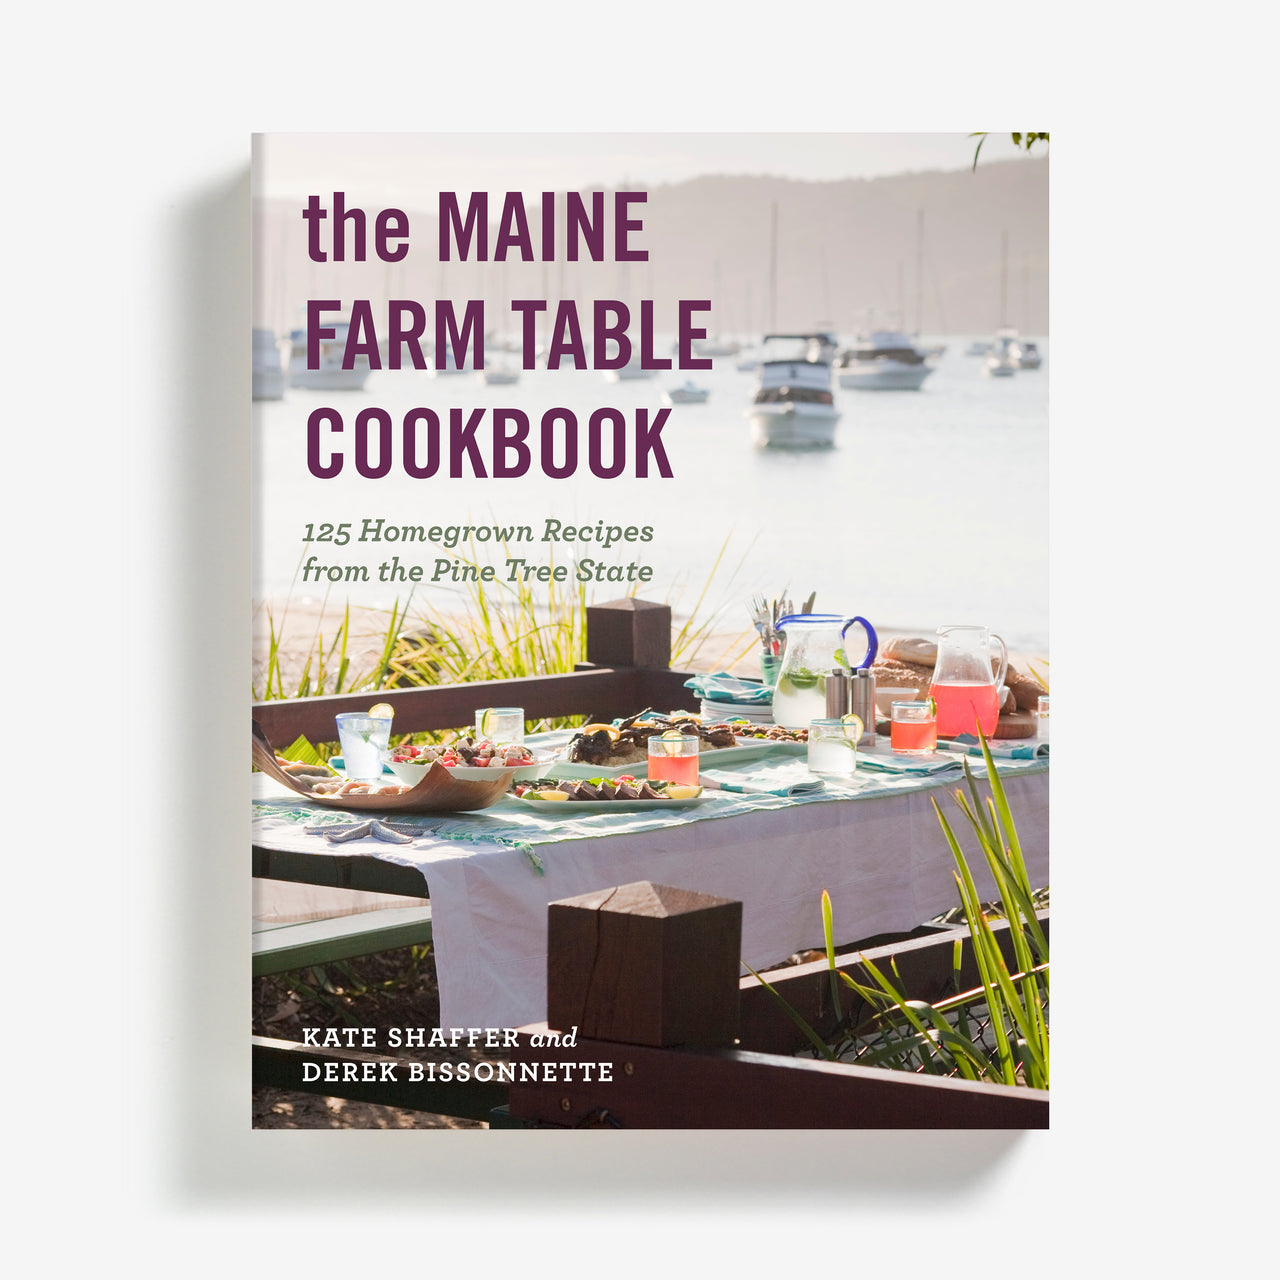 The Maine Farm Table Cookbook, signed by the author - PREORDER ONLY